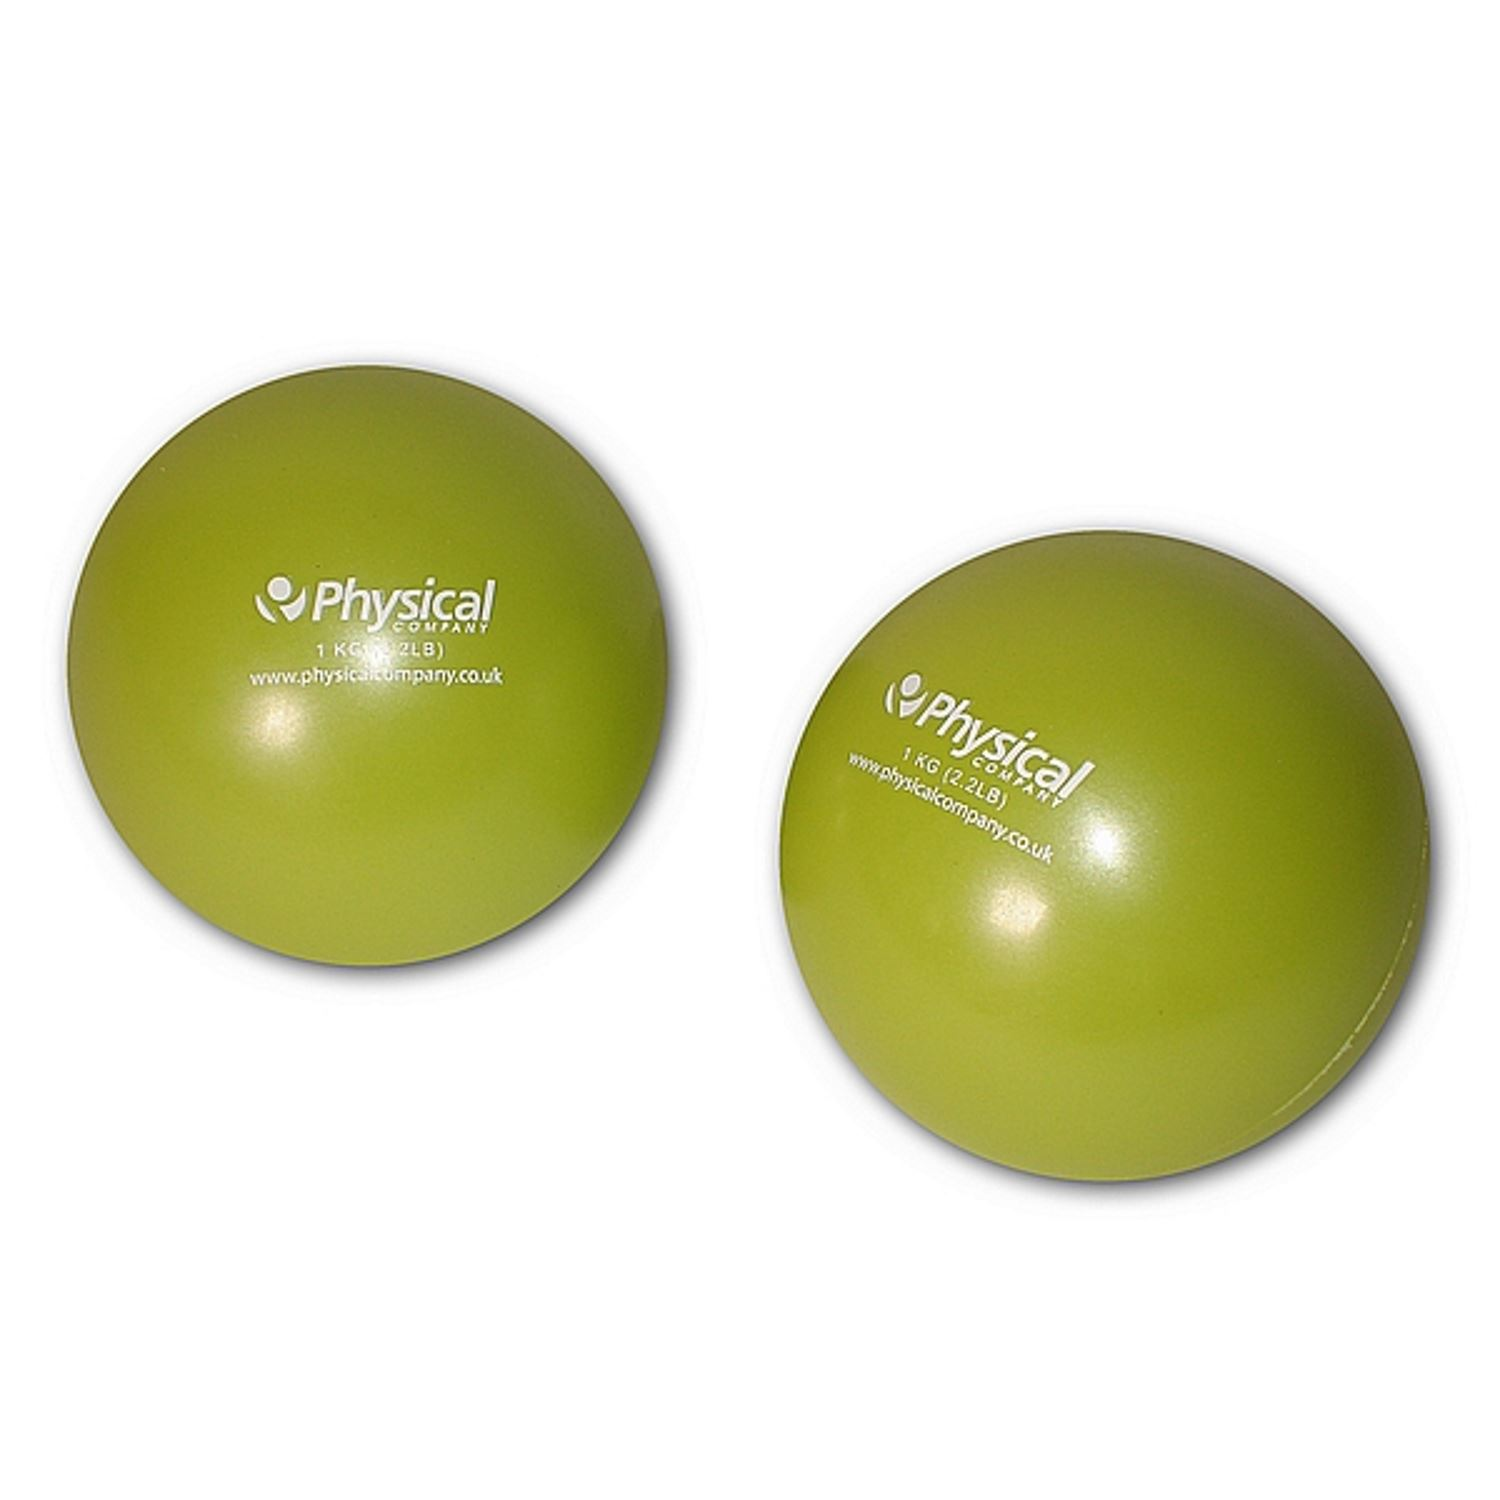 Weighted Soft Pilates Ball (2 x 1kg)